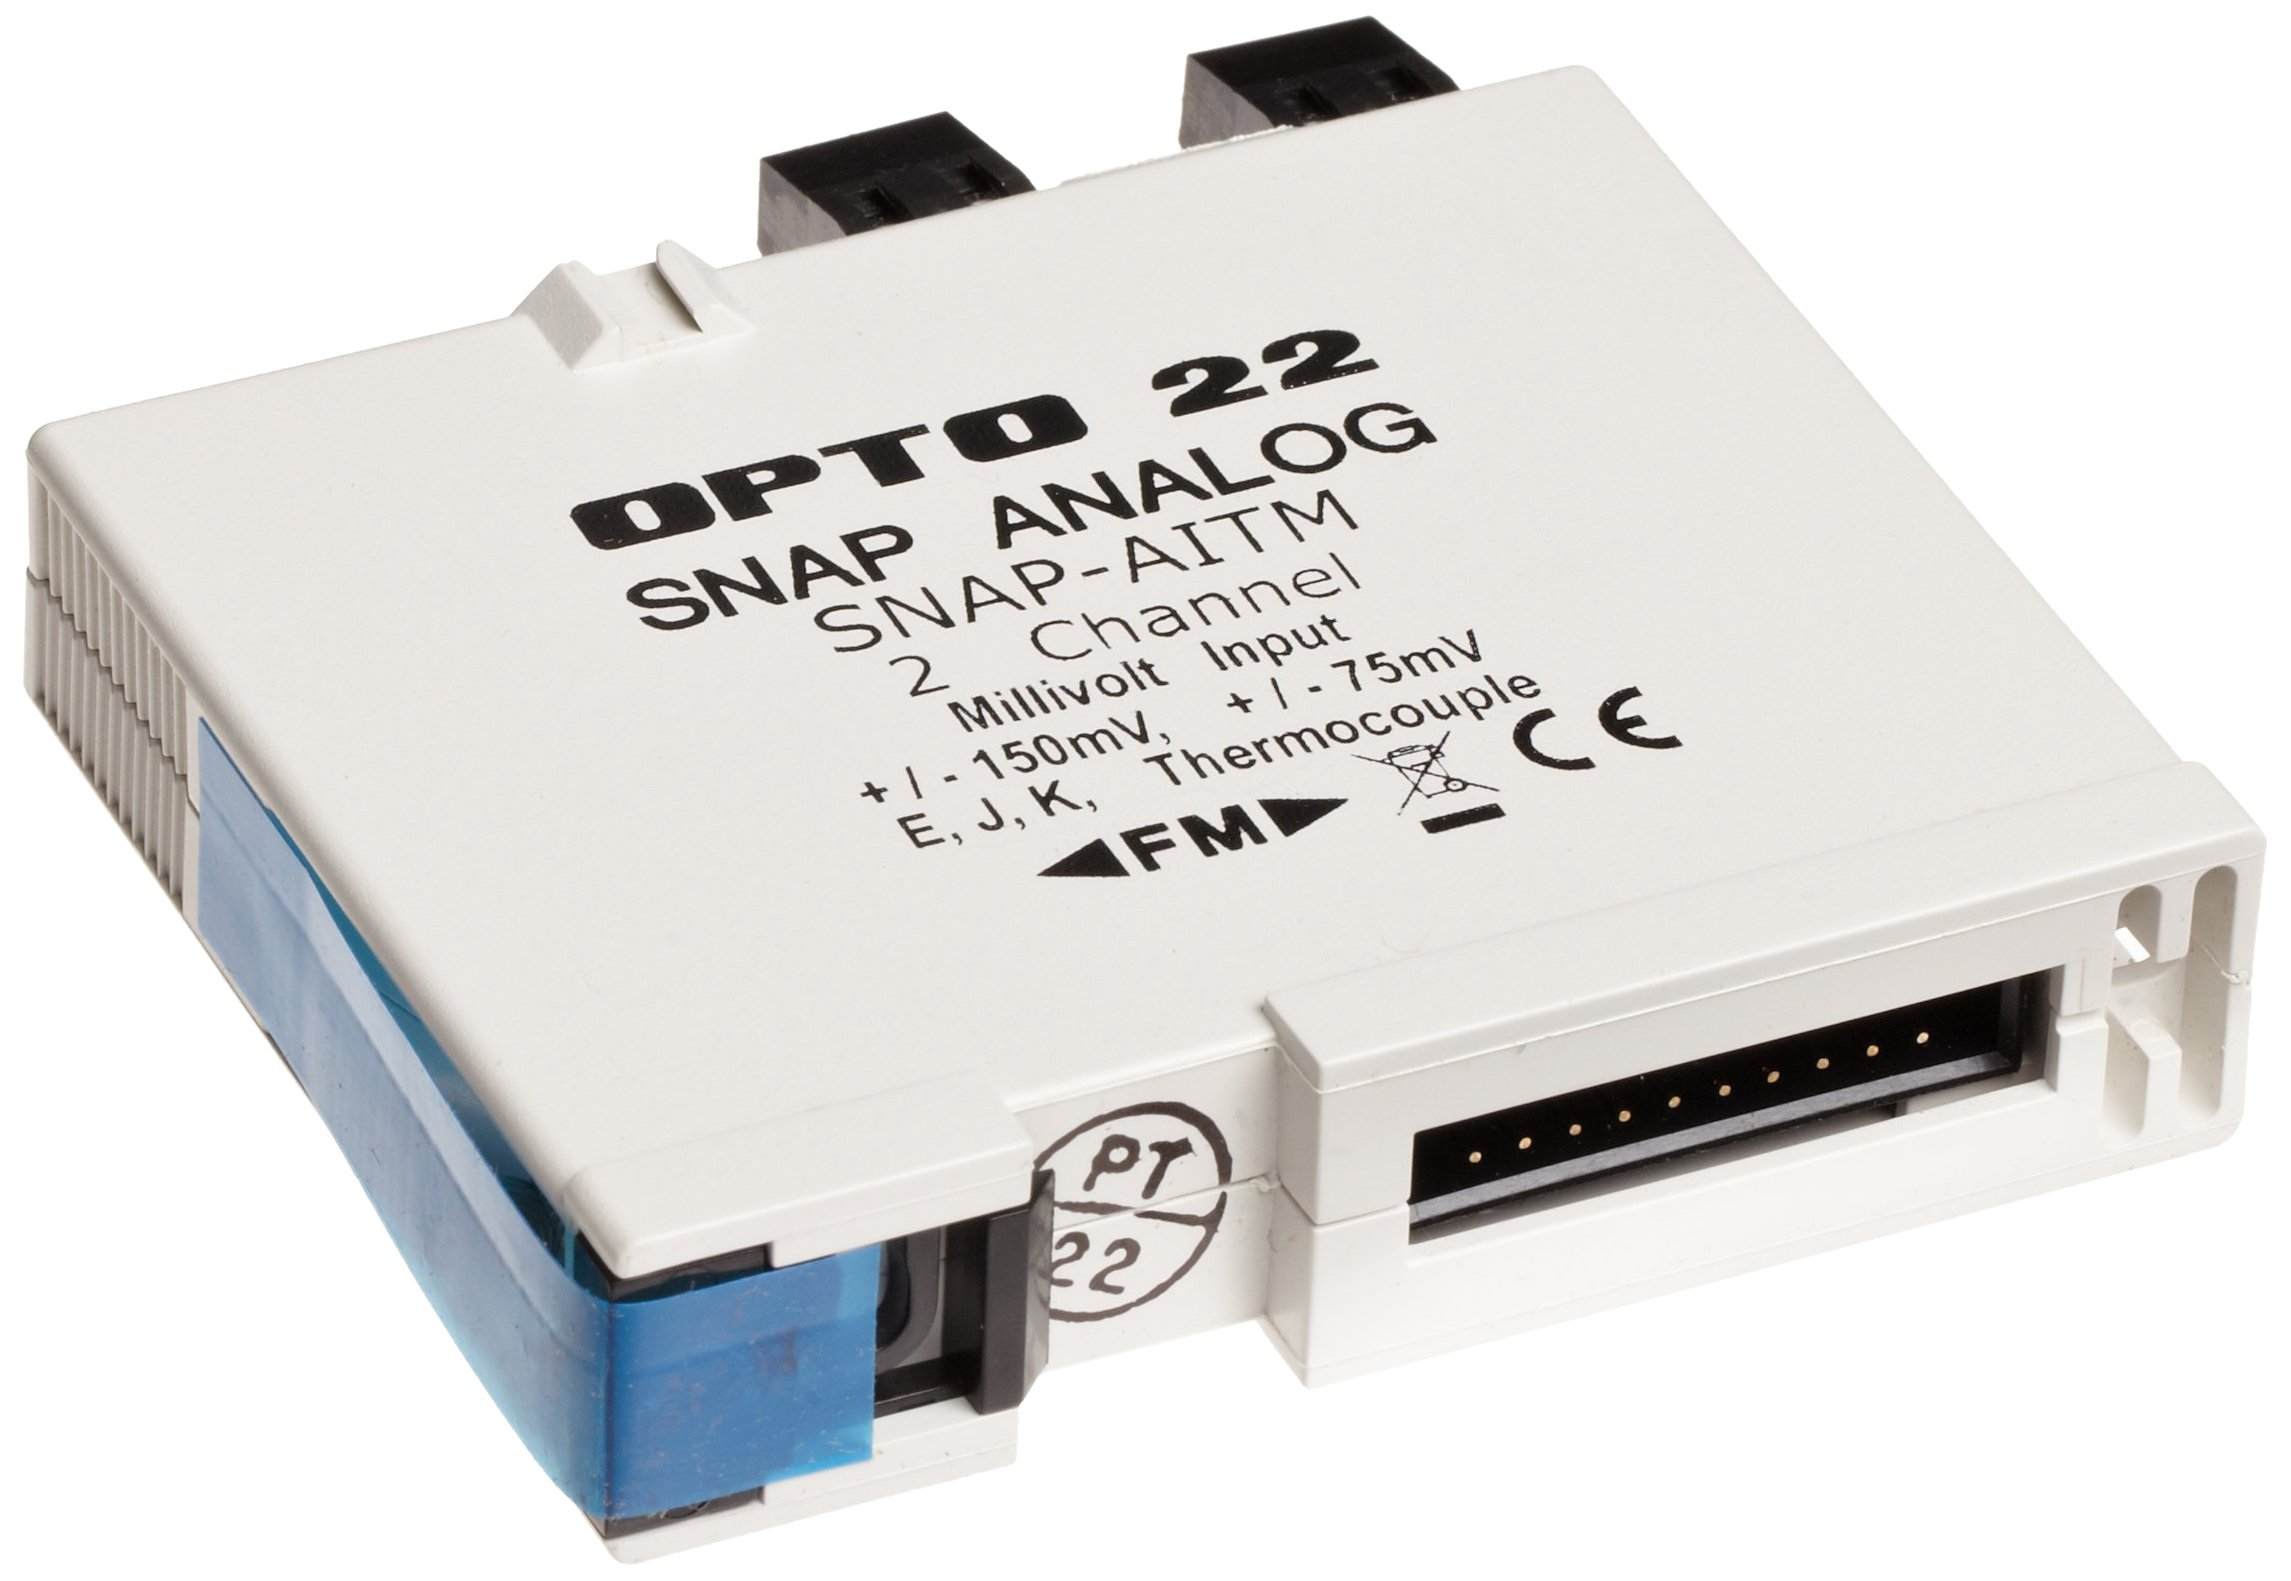 Opto 22 SNAP-AITM - SNAP Analog Input Module, 2-Channel Thermocouple or mV Input